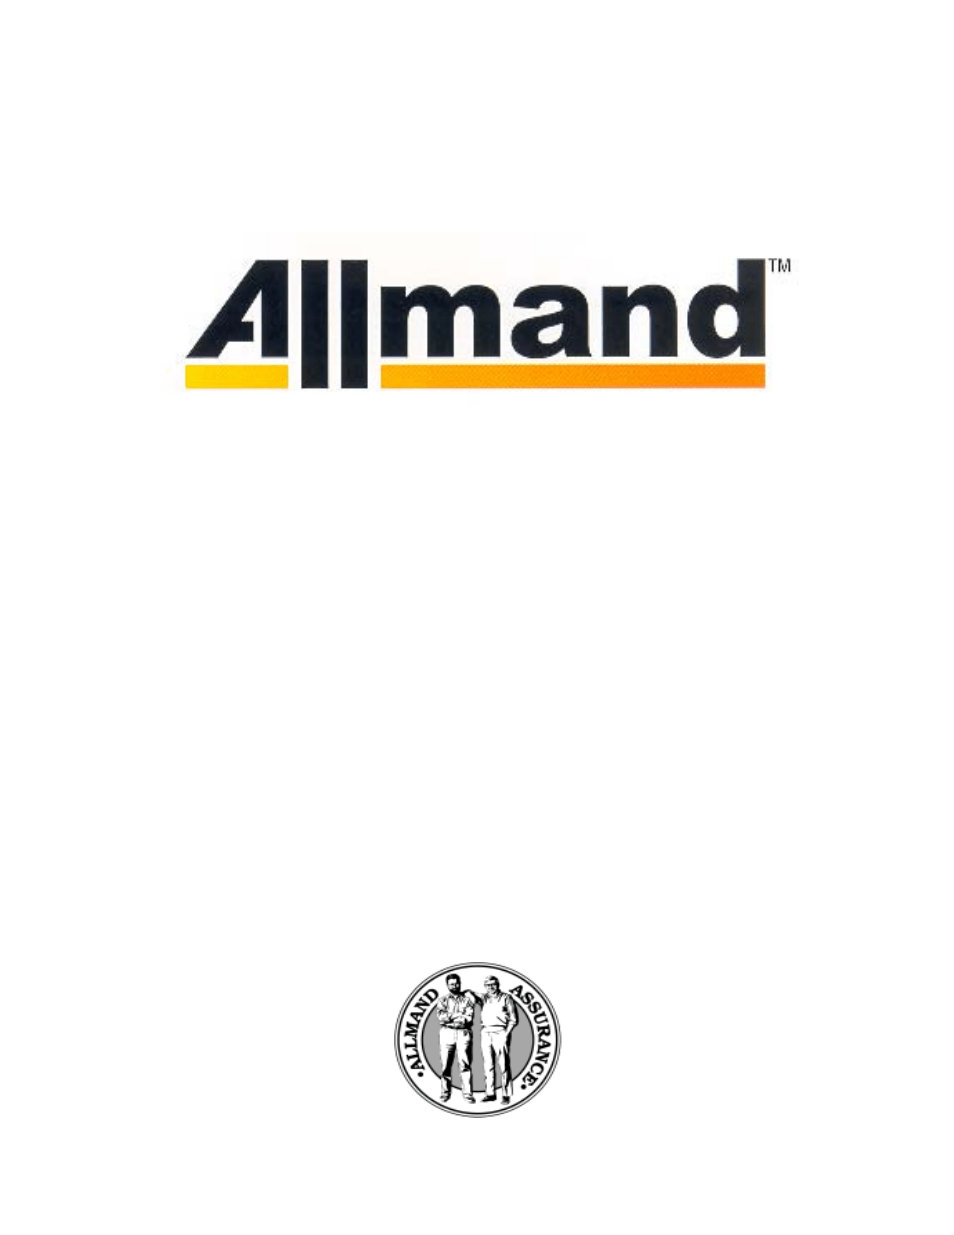 Allmand Brothers Allmand 8.5 10 FT BACKHOE User Manual